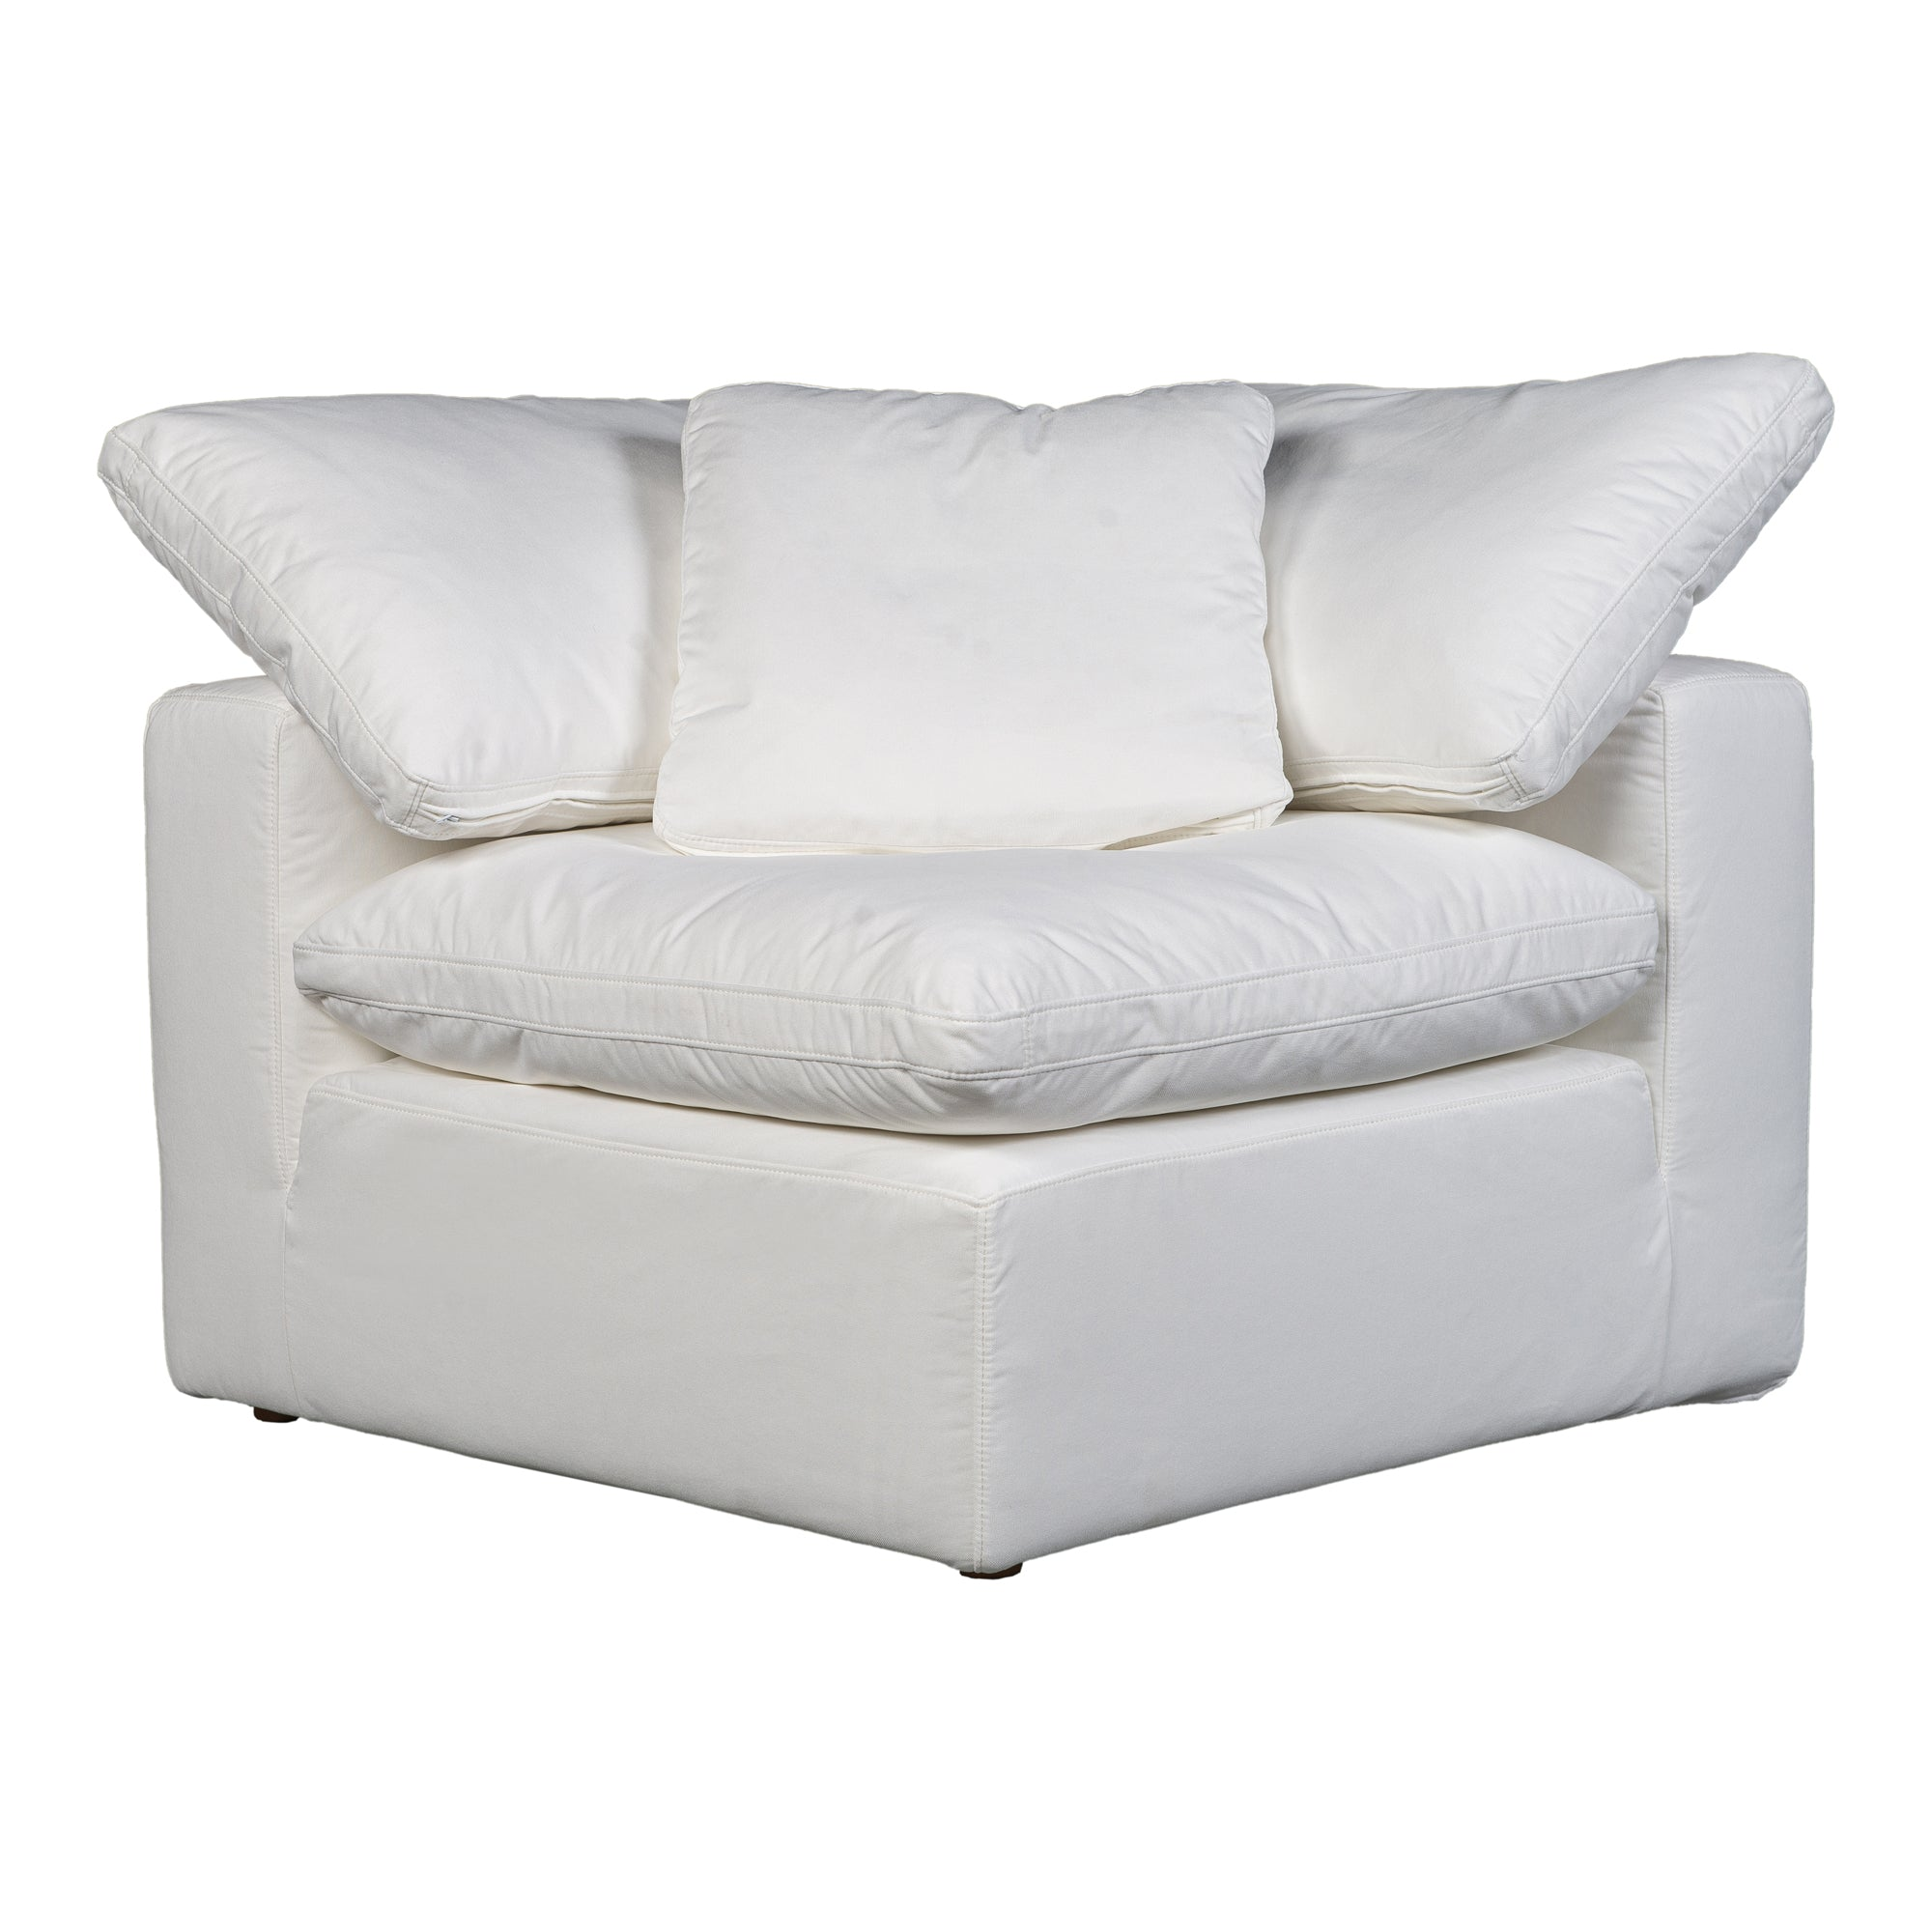 Terra condo corner chair, white - Tops-Dress